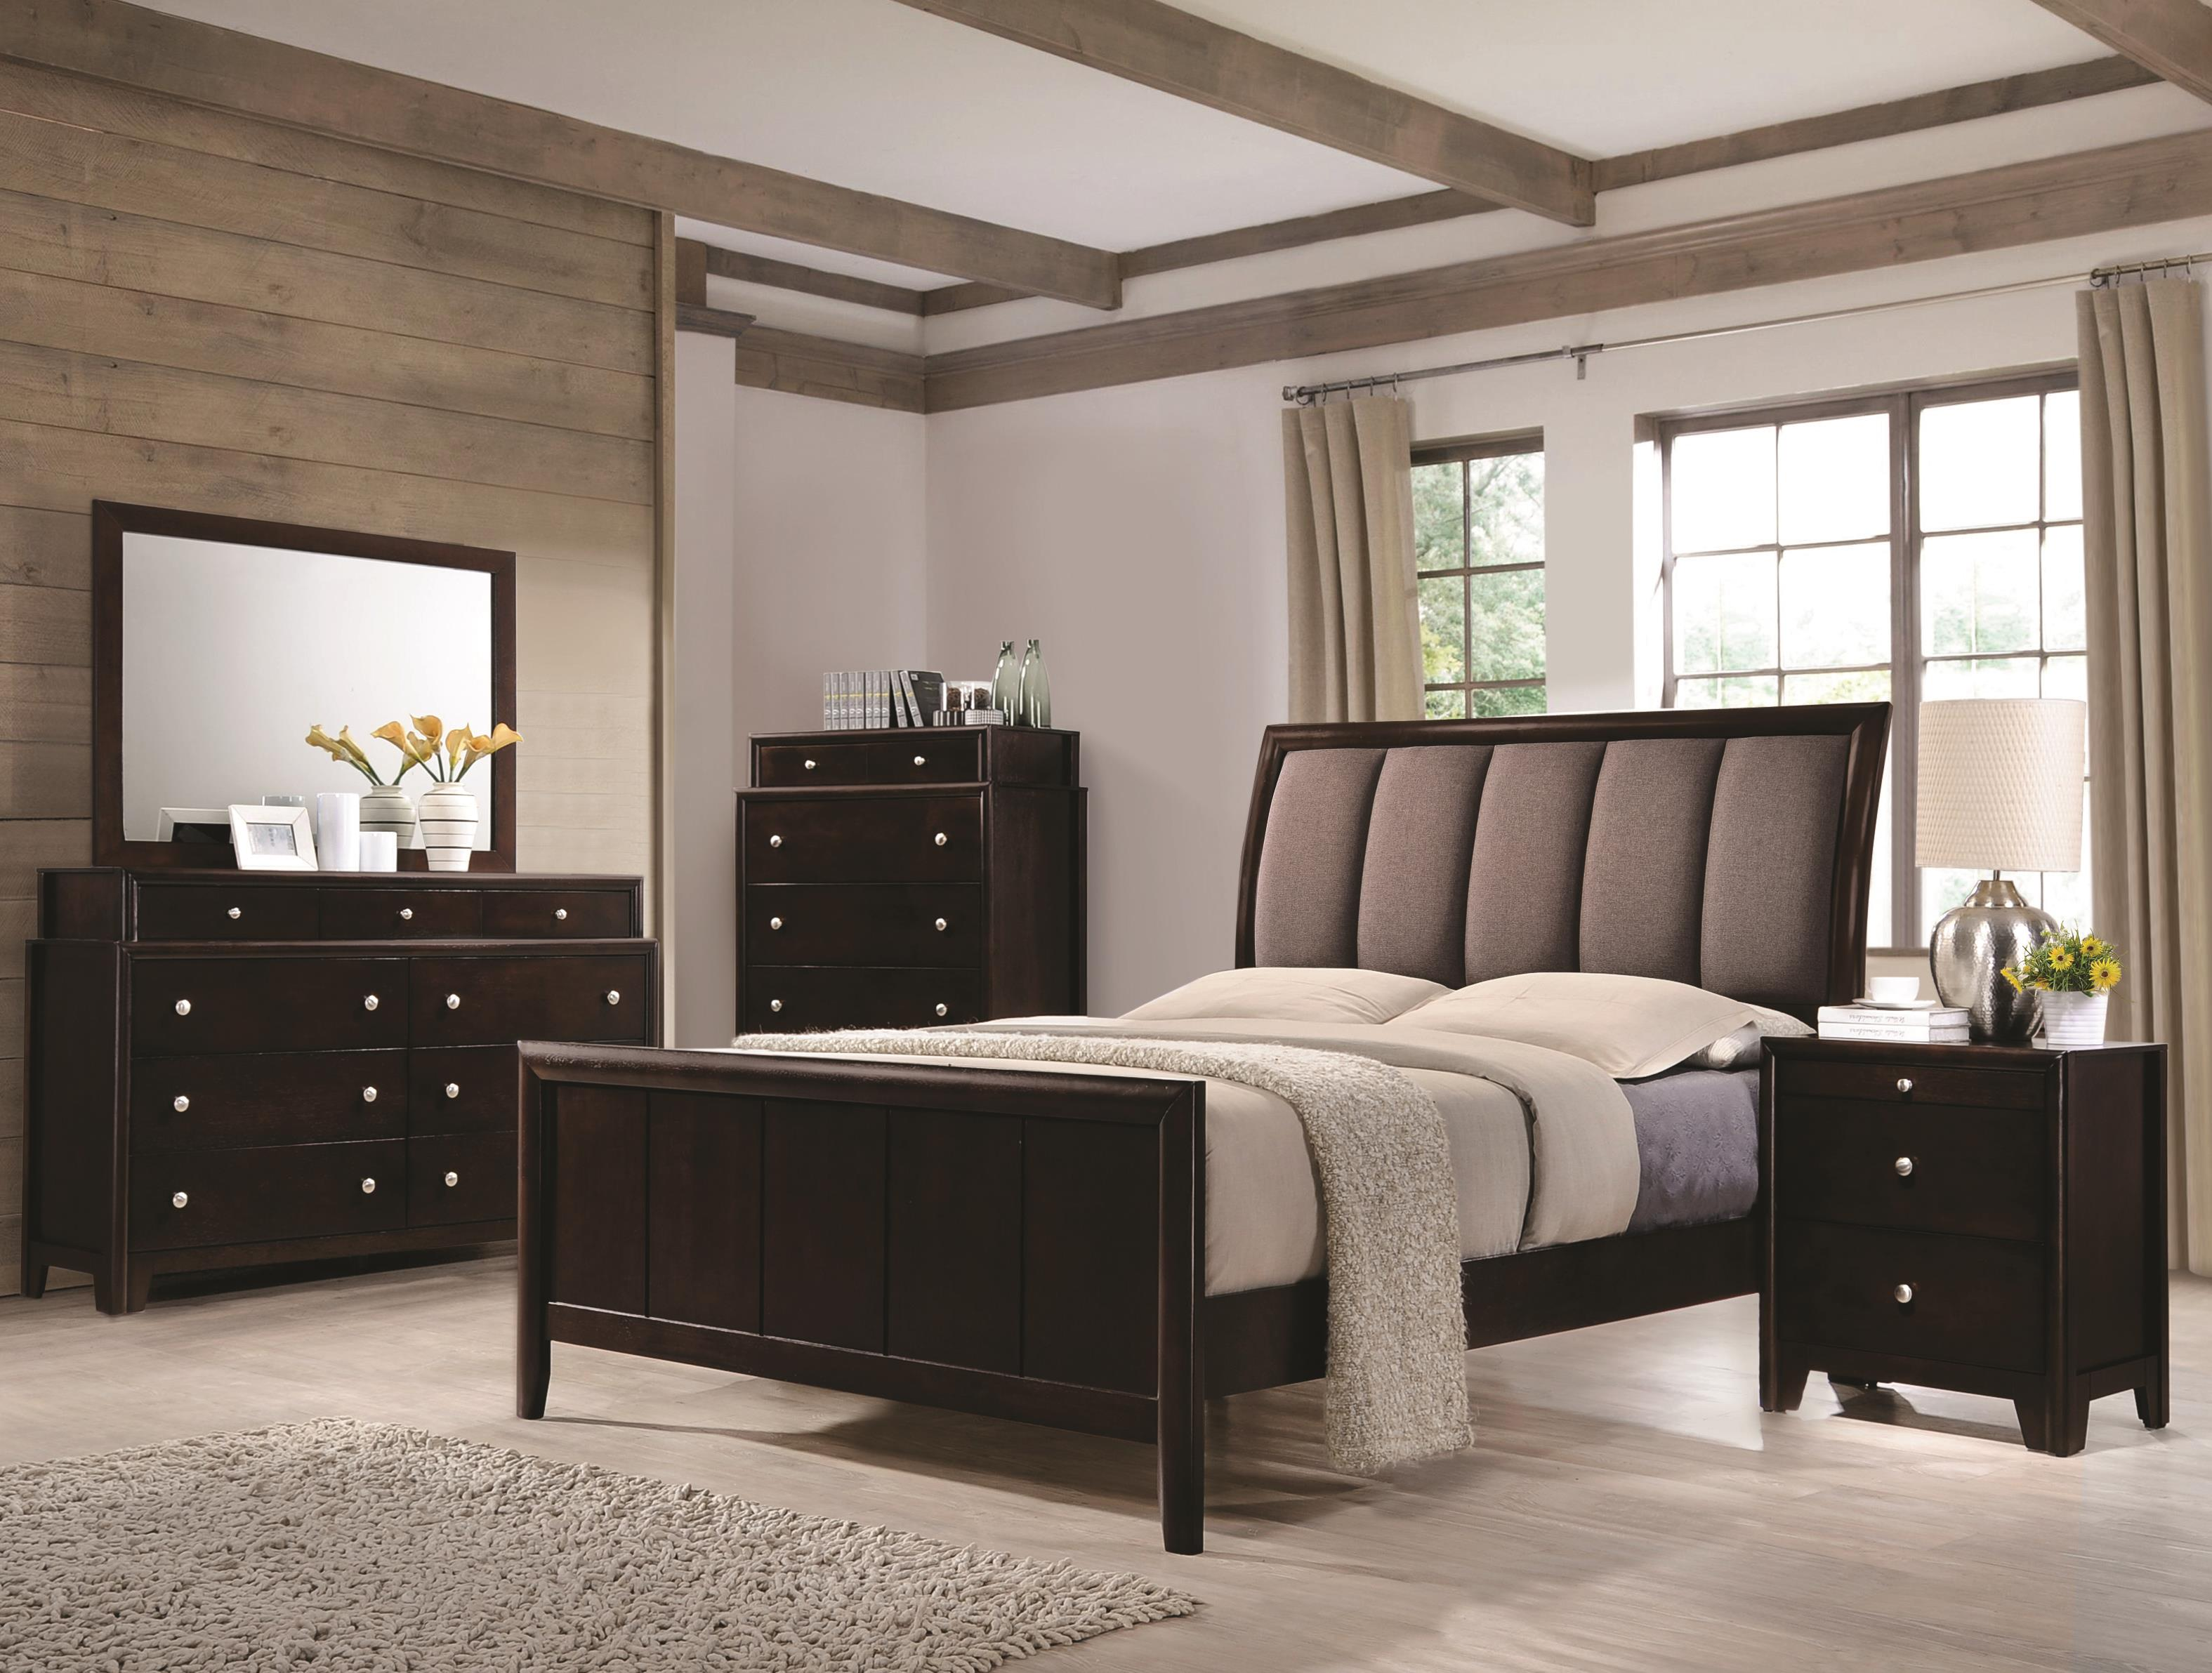 Coaster Madison Queen Bedroom Group Dream Home Furniture Bedroom Groups